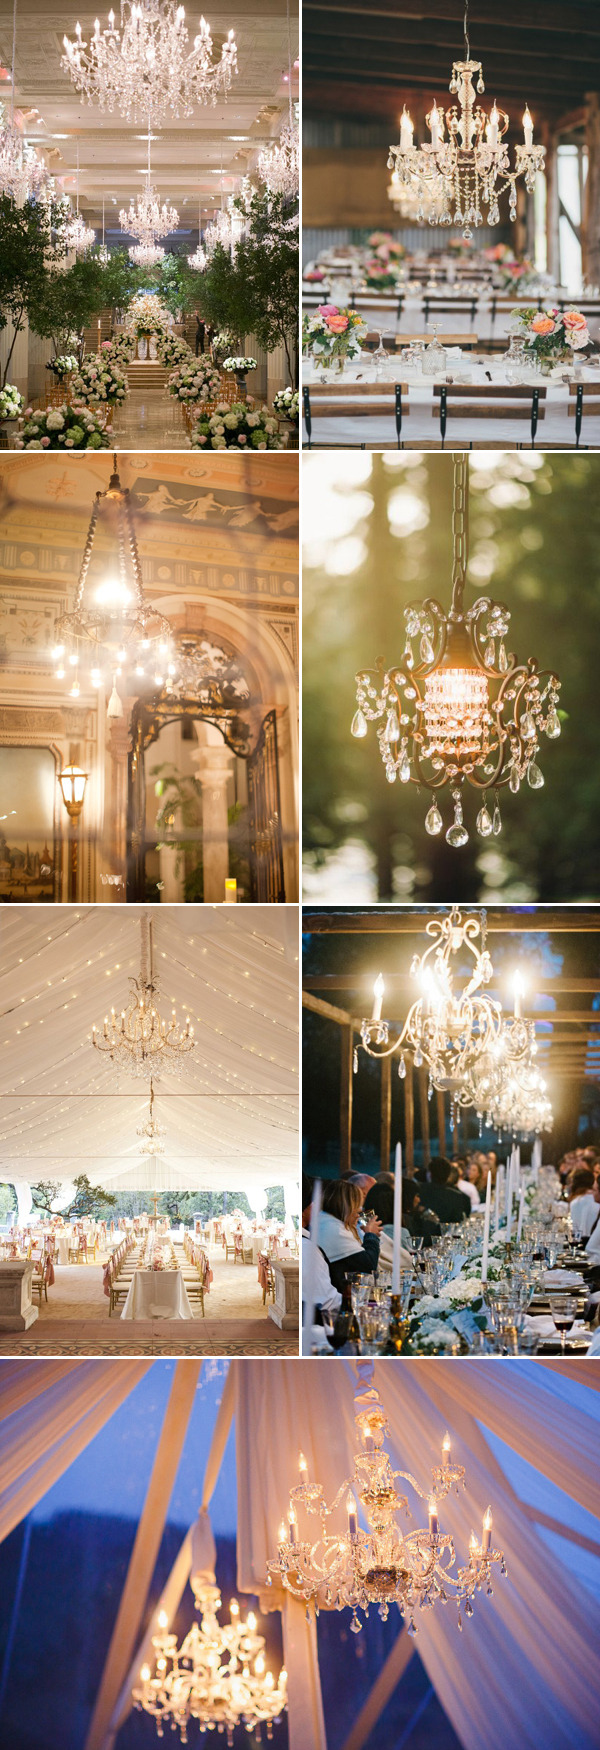 classic romantic crystal wedding chandeliers decoration ideas